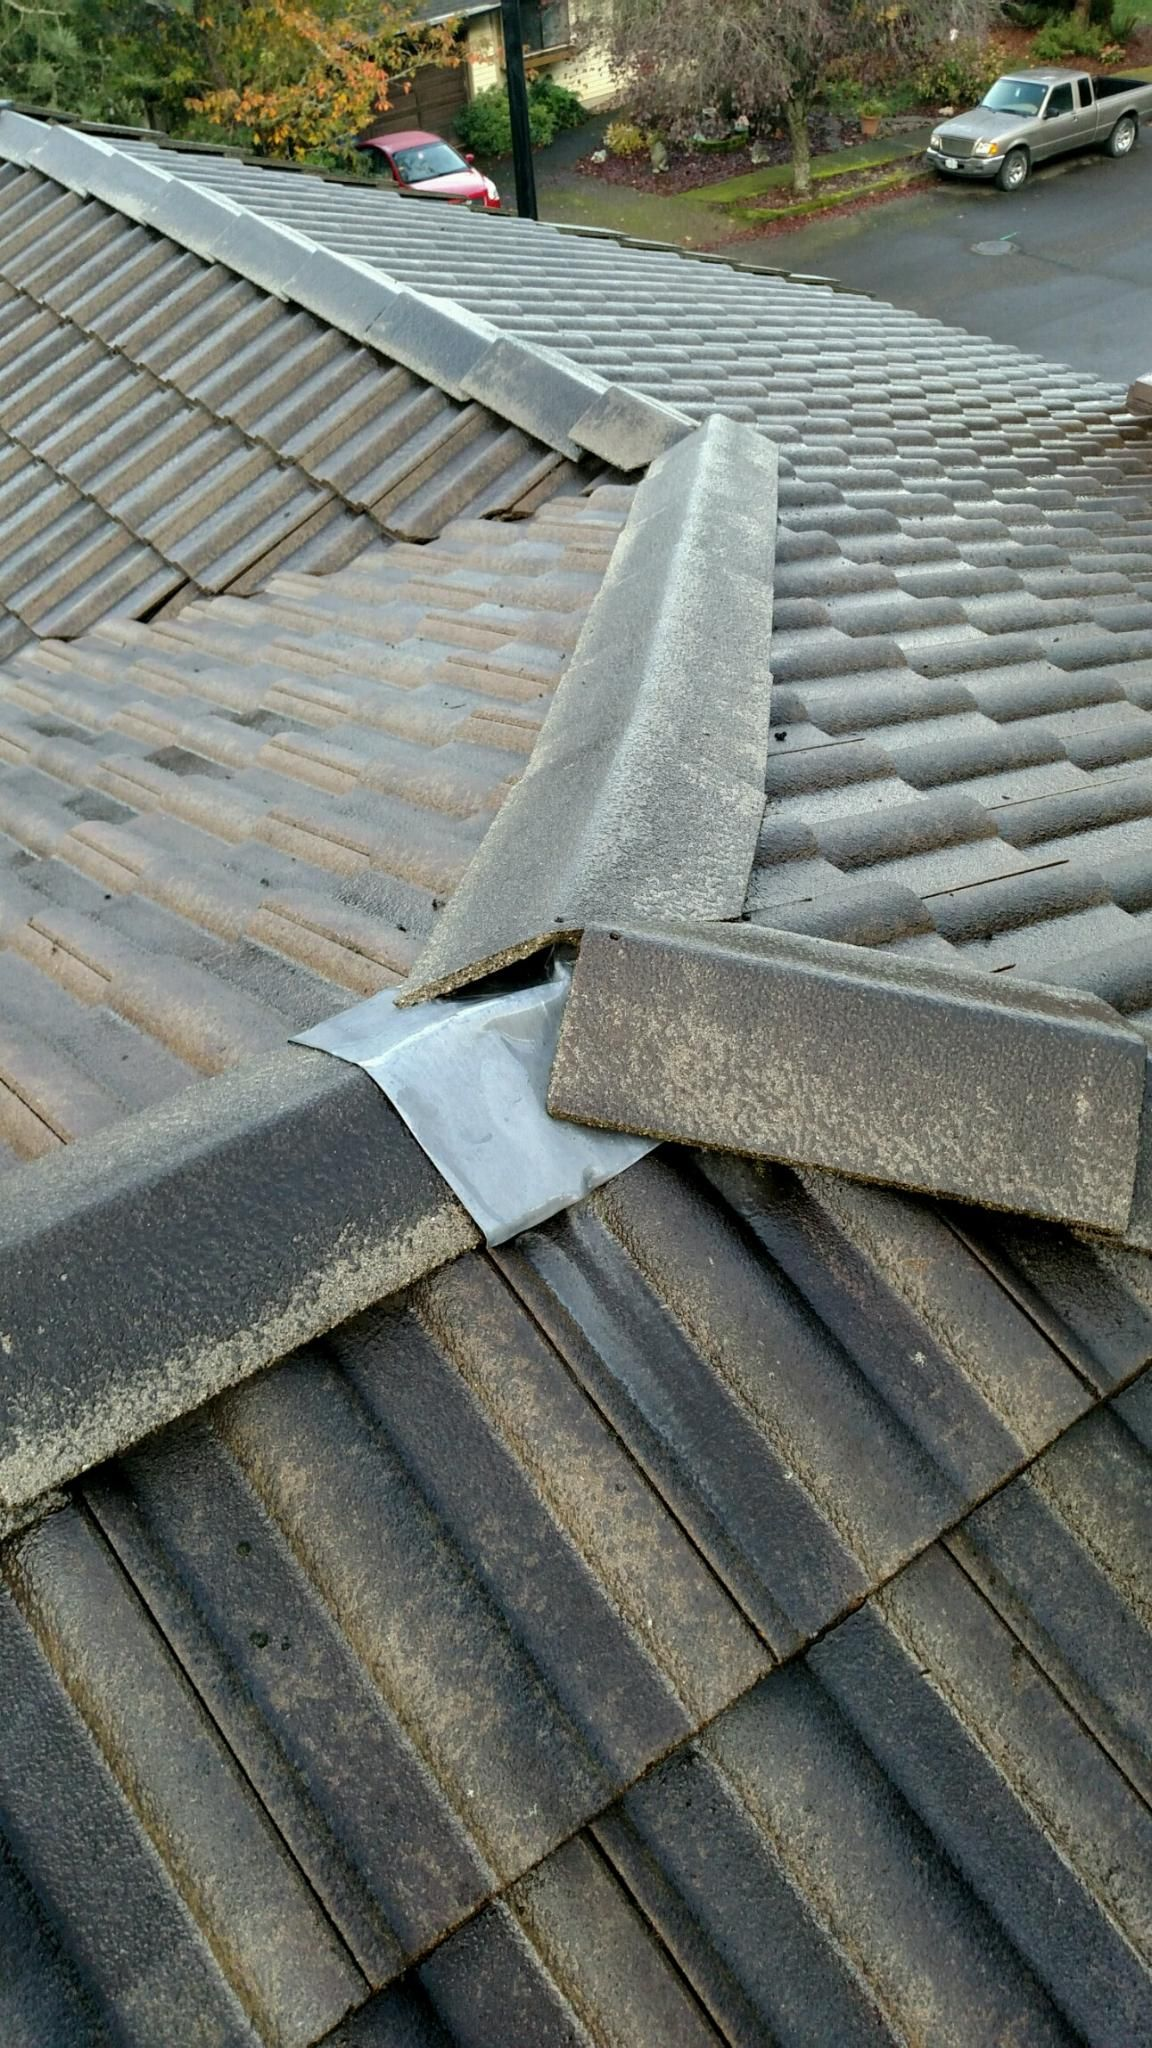 Tile Roof Repair Cleaning Vancouver Wa By Northwest Roof Maintenance Roof Maintenance Roof Repair Roofing Services